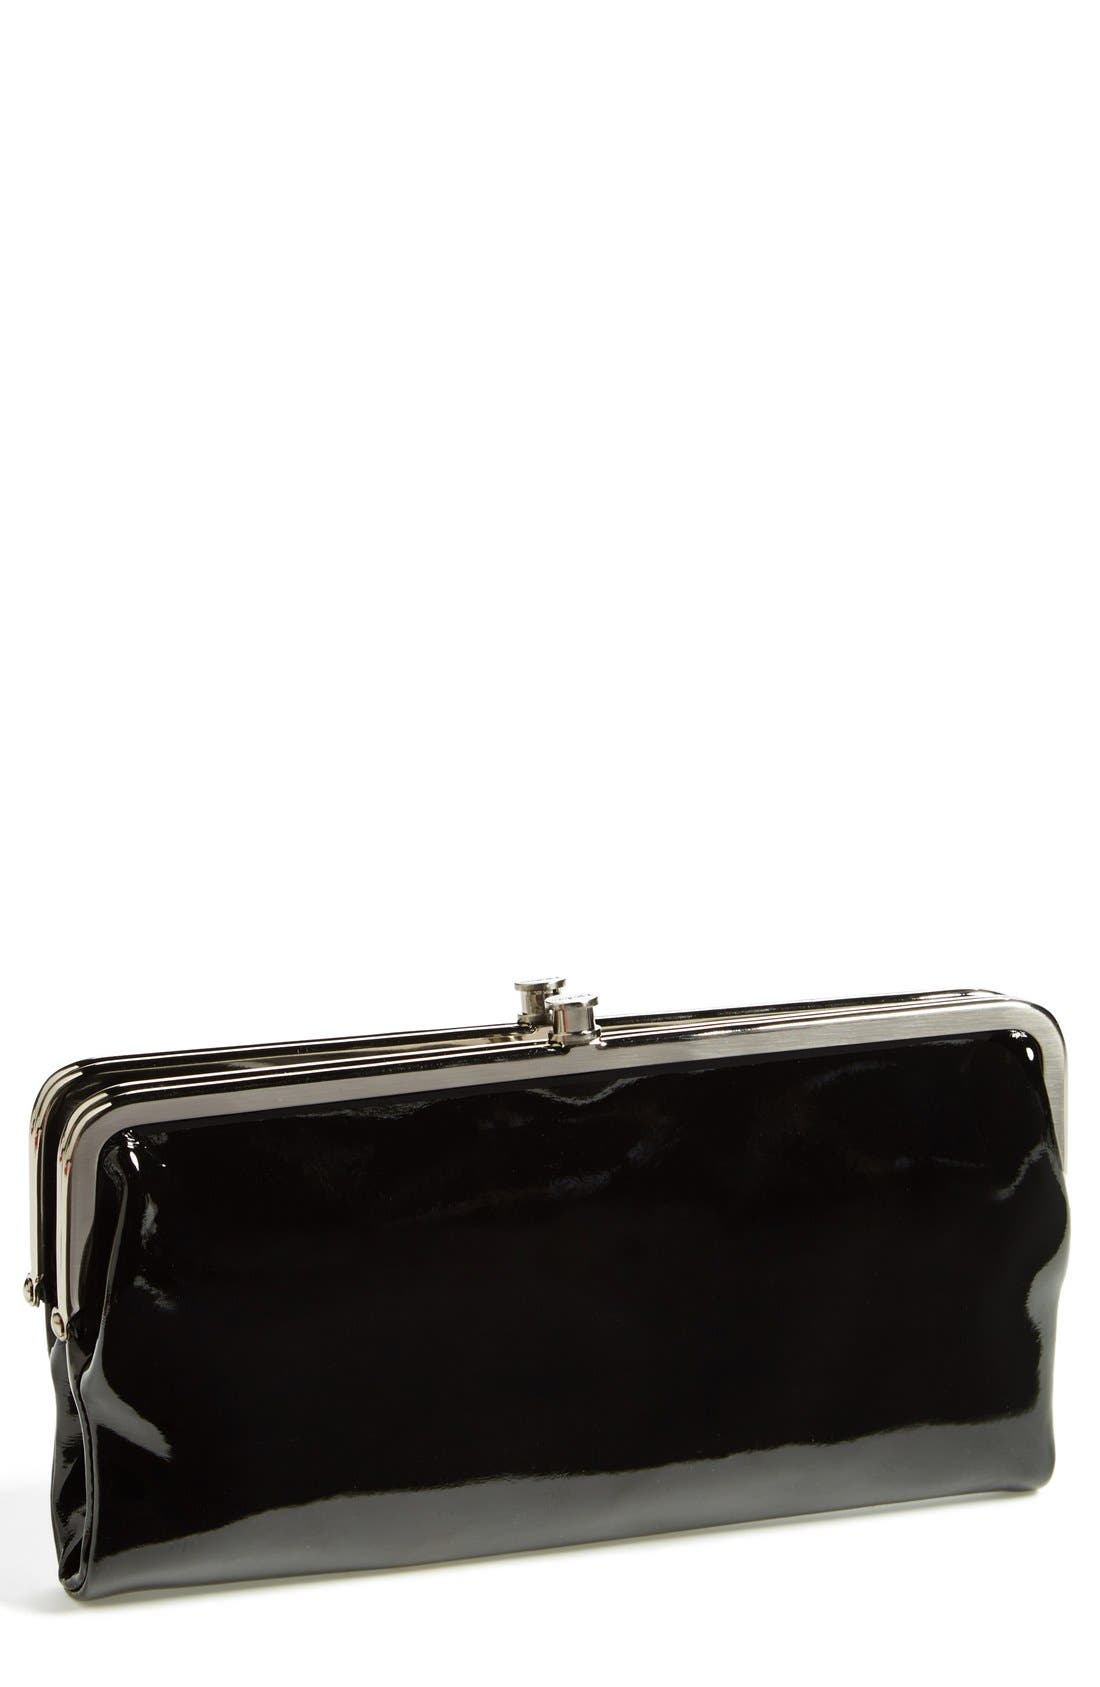 Main Image - Hobo 'Lauren' Double Frame Patent Leather Clutch